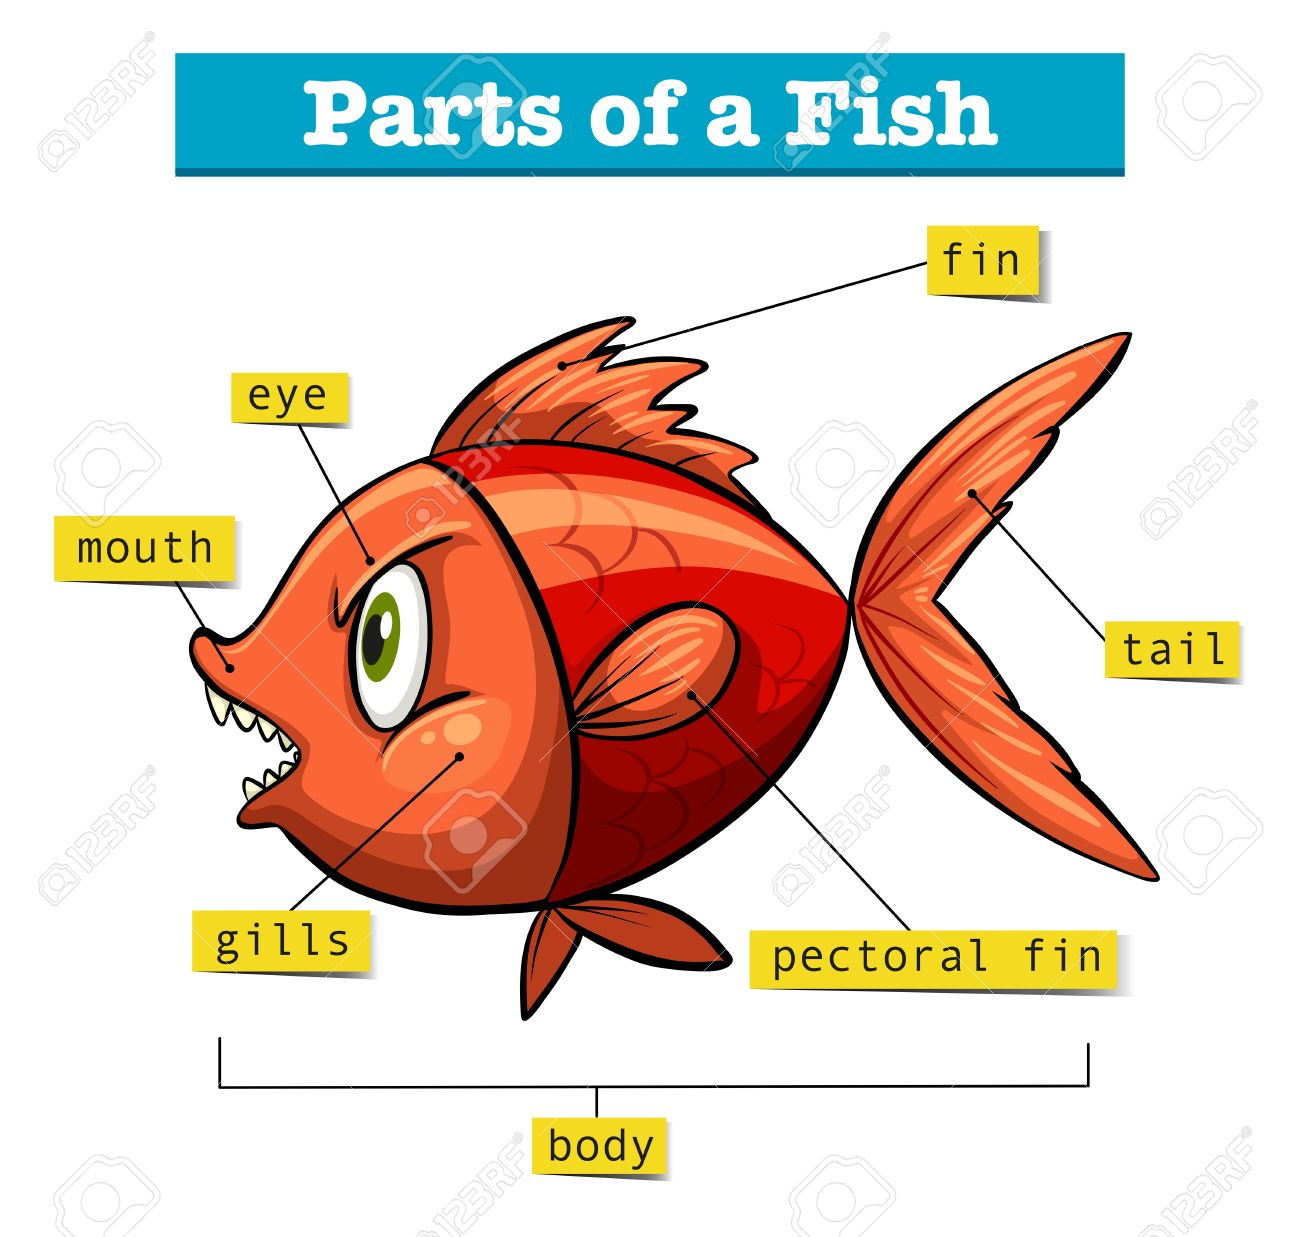 diagram showing parts of fish illustration stock vector - 60629733